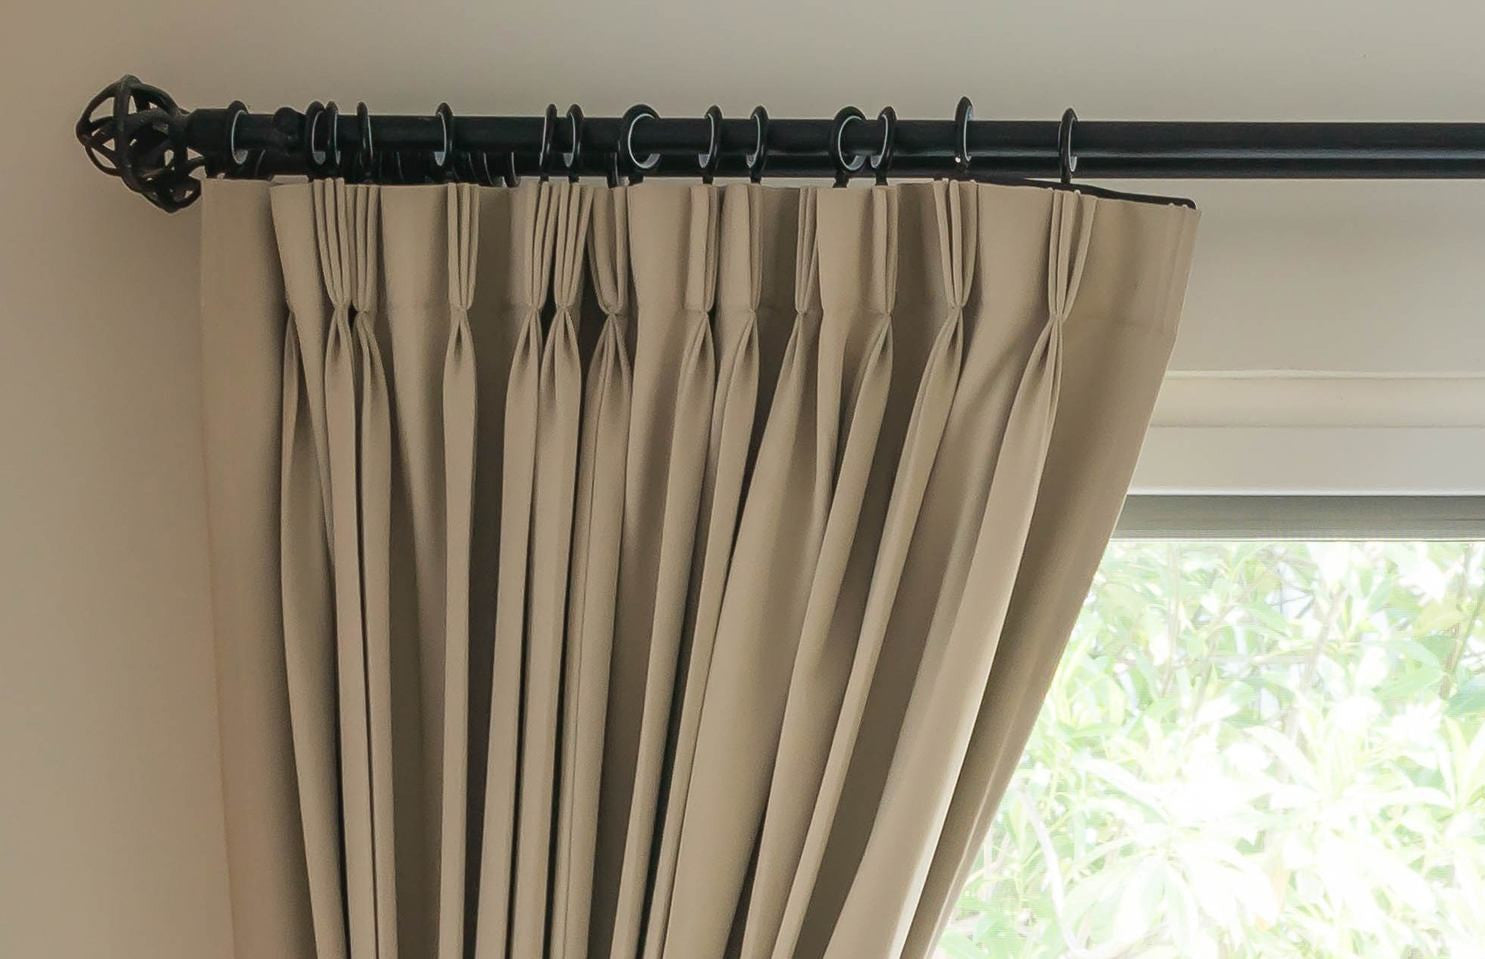 Black Curtain Pole And Curtains